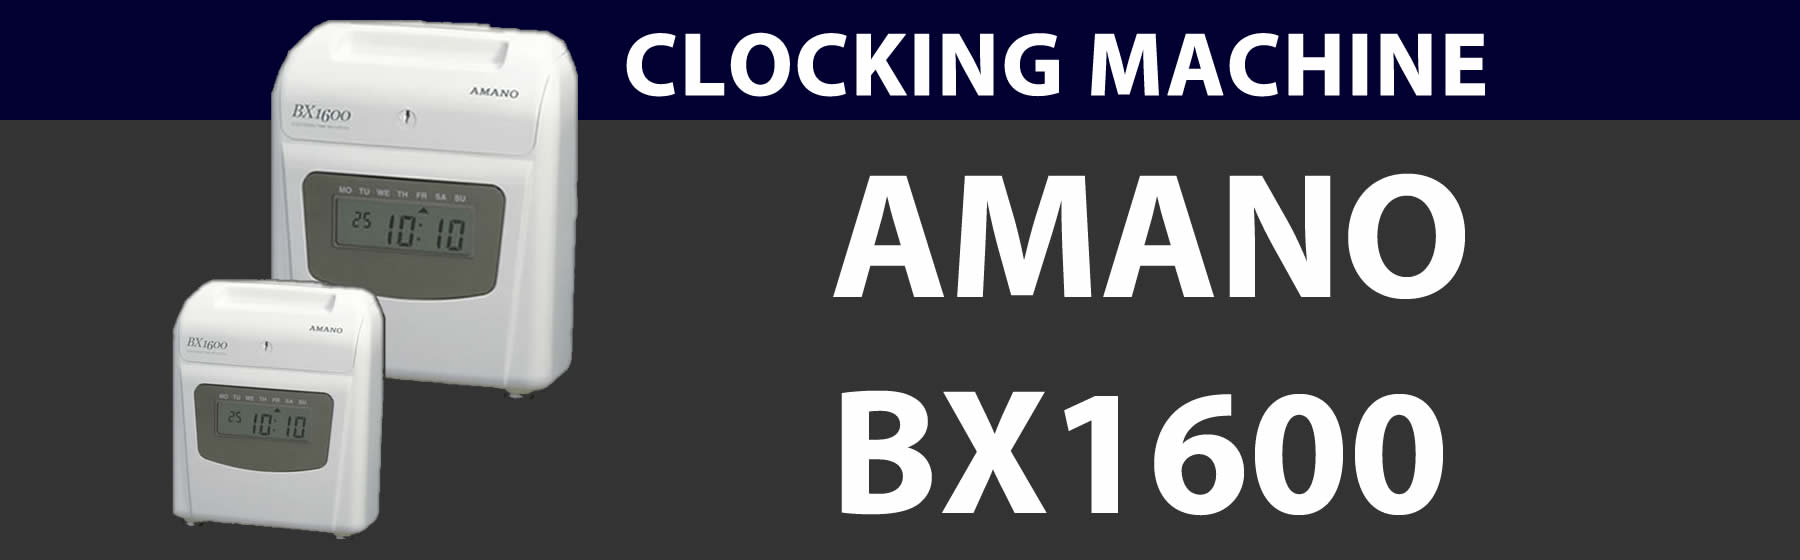 clocking-machine-AMANO BX 1600 Banner